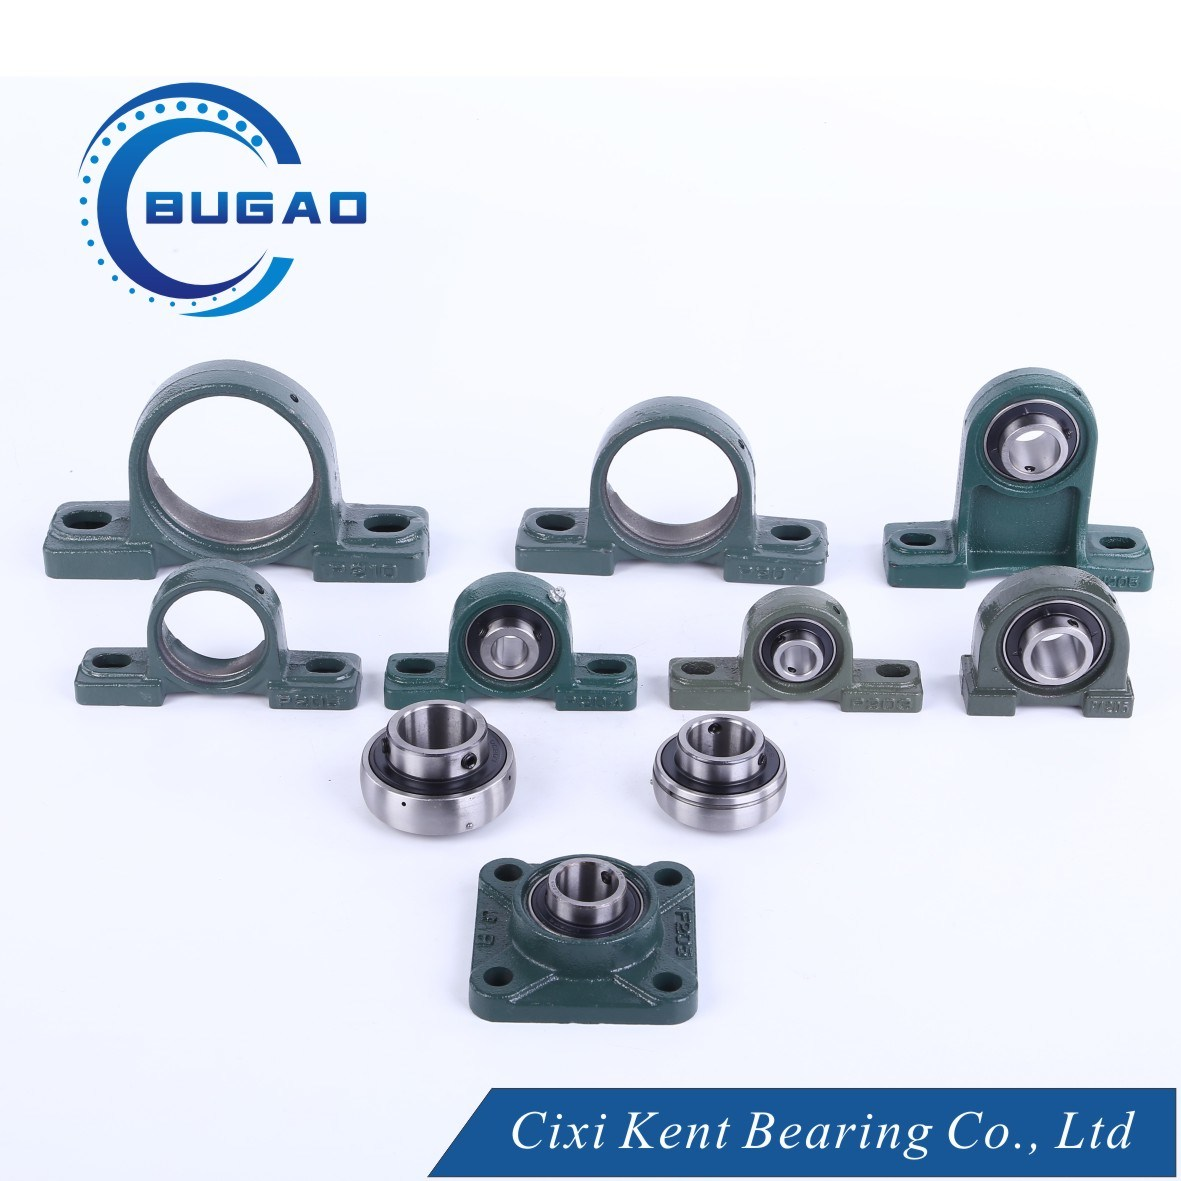 Heavy Duty Pillow Block Bearing UCP Series with Bearing Housing